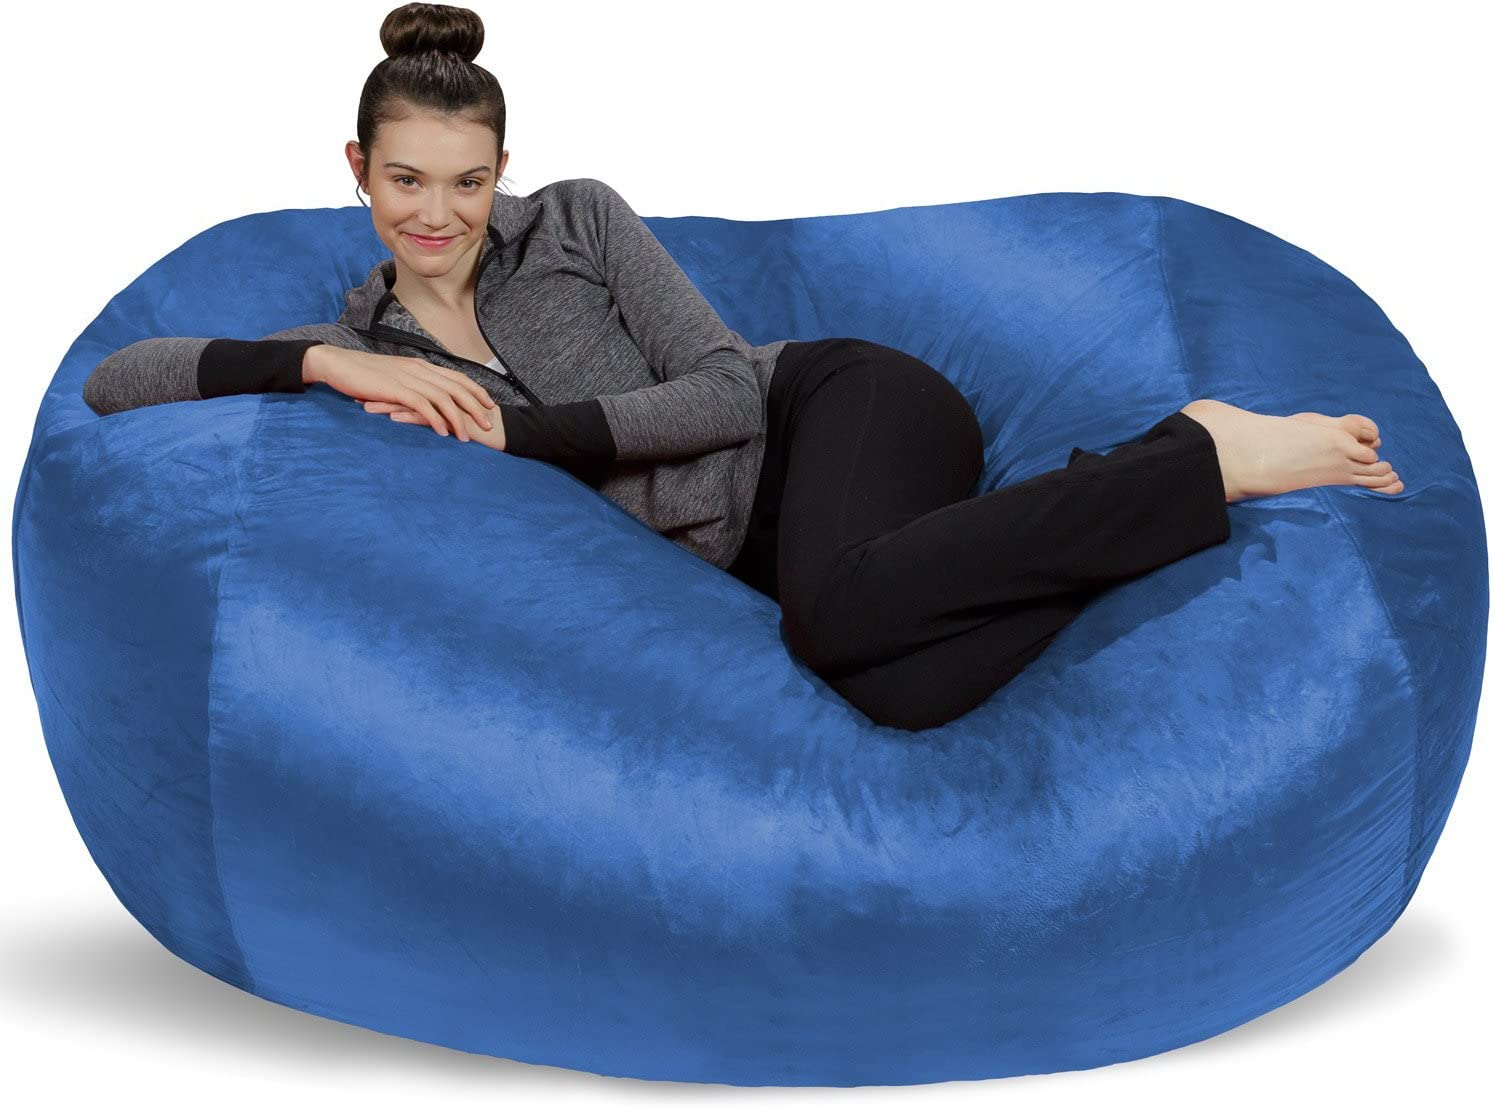 Sofa Sack - Plush Bean Bag Sofas with Super Soft Microsuede Cover - XL Memory Foam Stuffed Lounger Chairs for Kids, Adults, Couples - Jumbo Bean Bag Chair Furniture - Royal Blue 6'